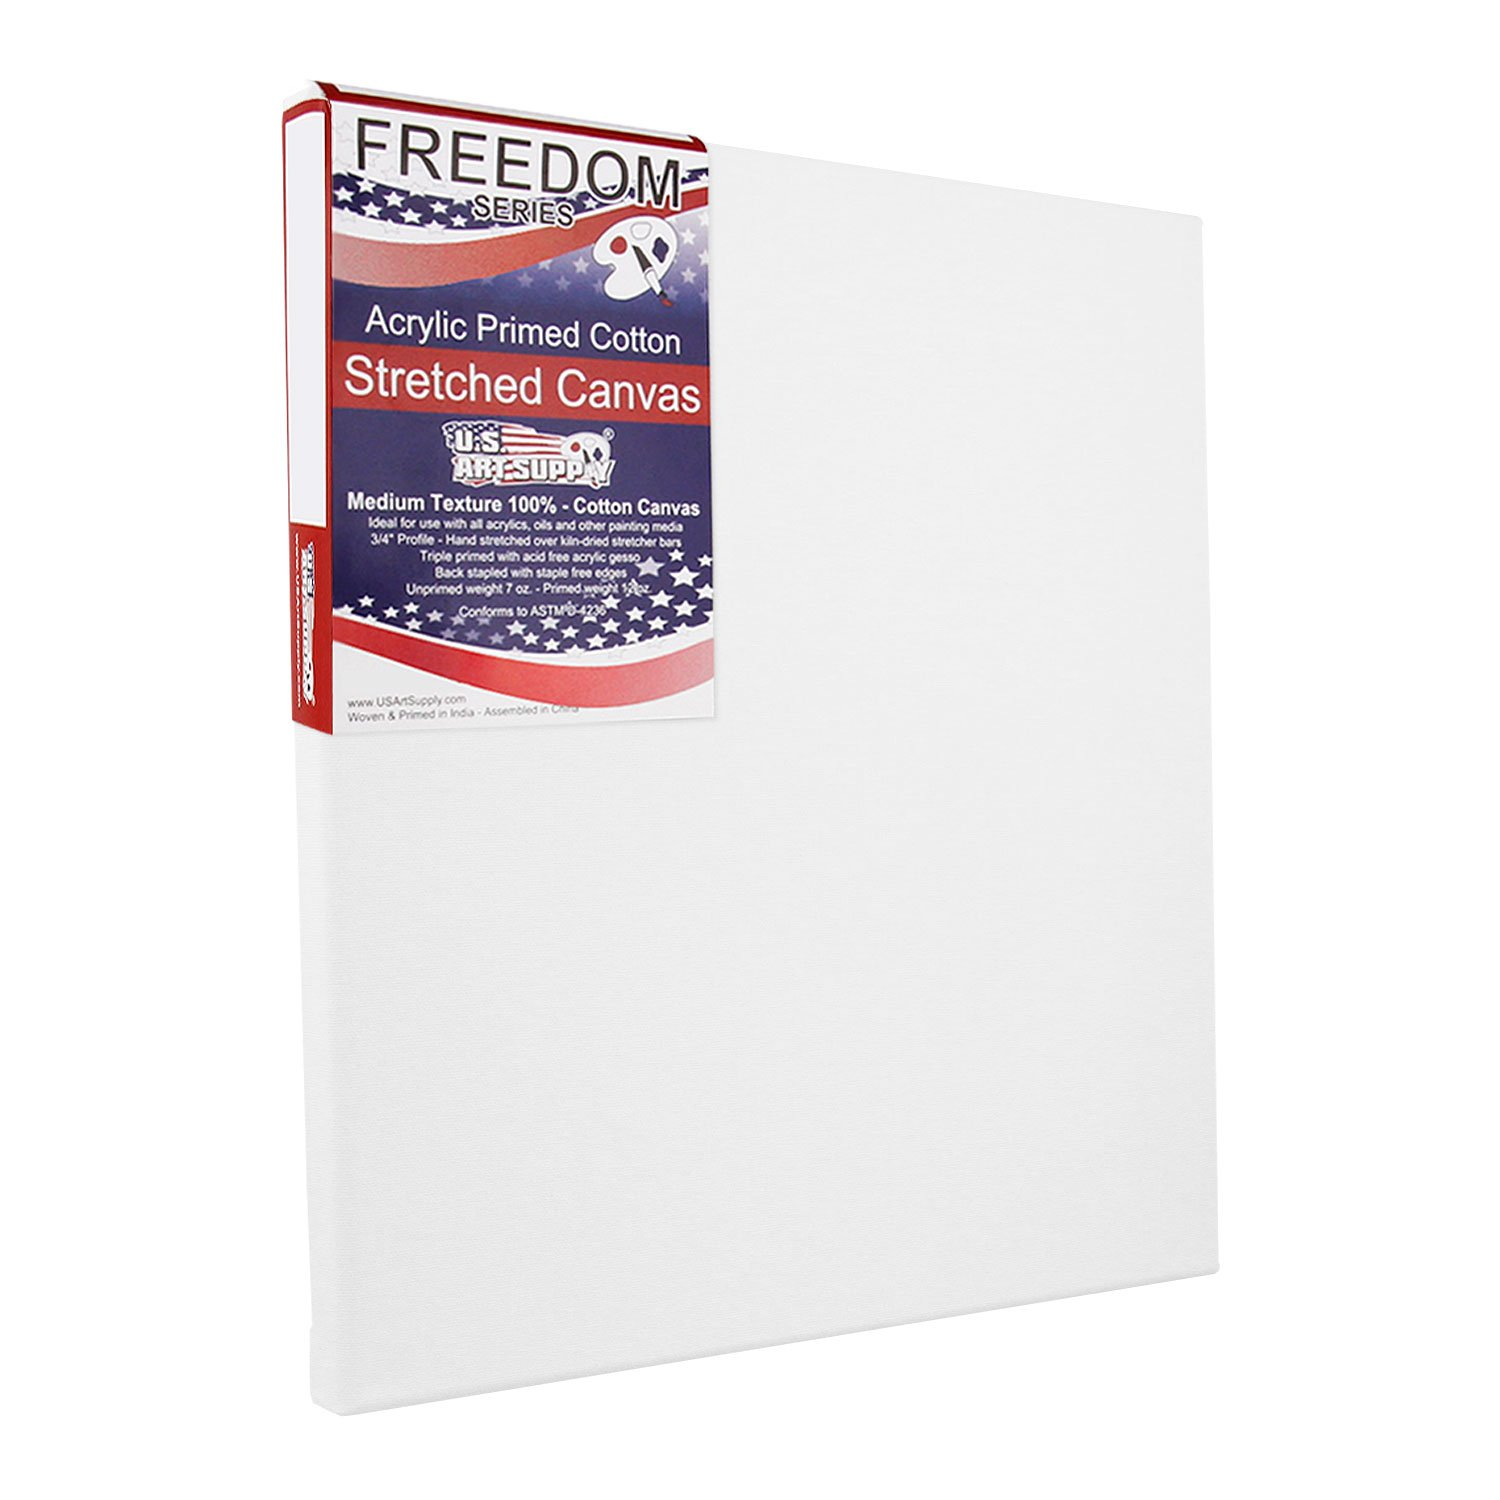 3//4 Profile 12 Ounce Primed Gesso US Art Supply 8 x 8 inch Professional Quality Acid Free Stretched Canvas 6-Pack 1 Full Case of 6 Single Canvases